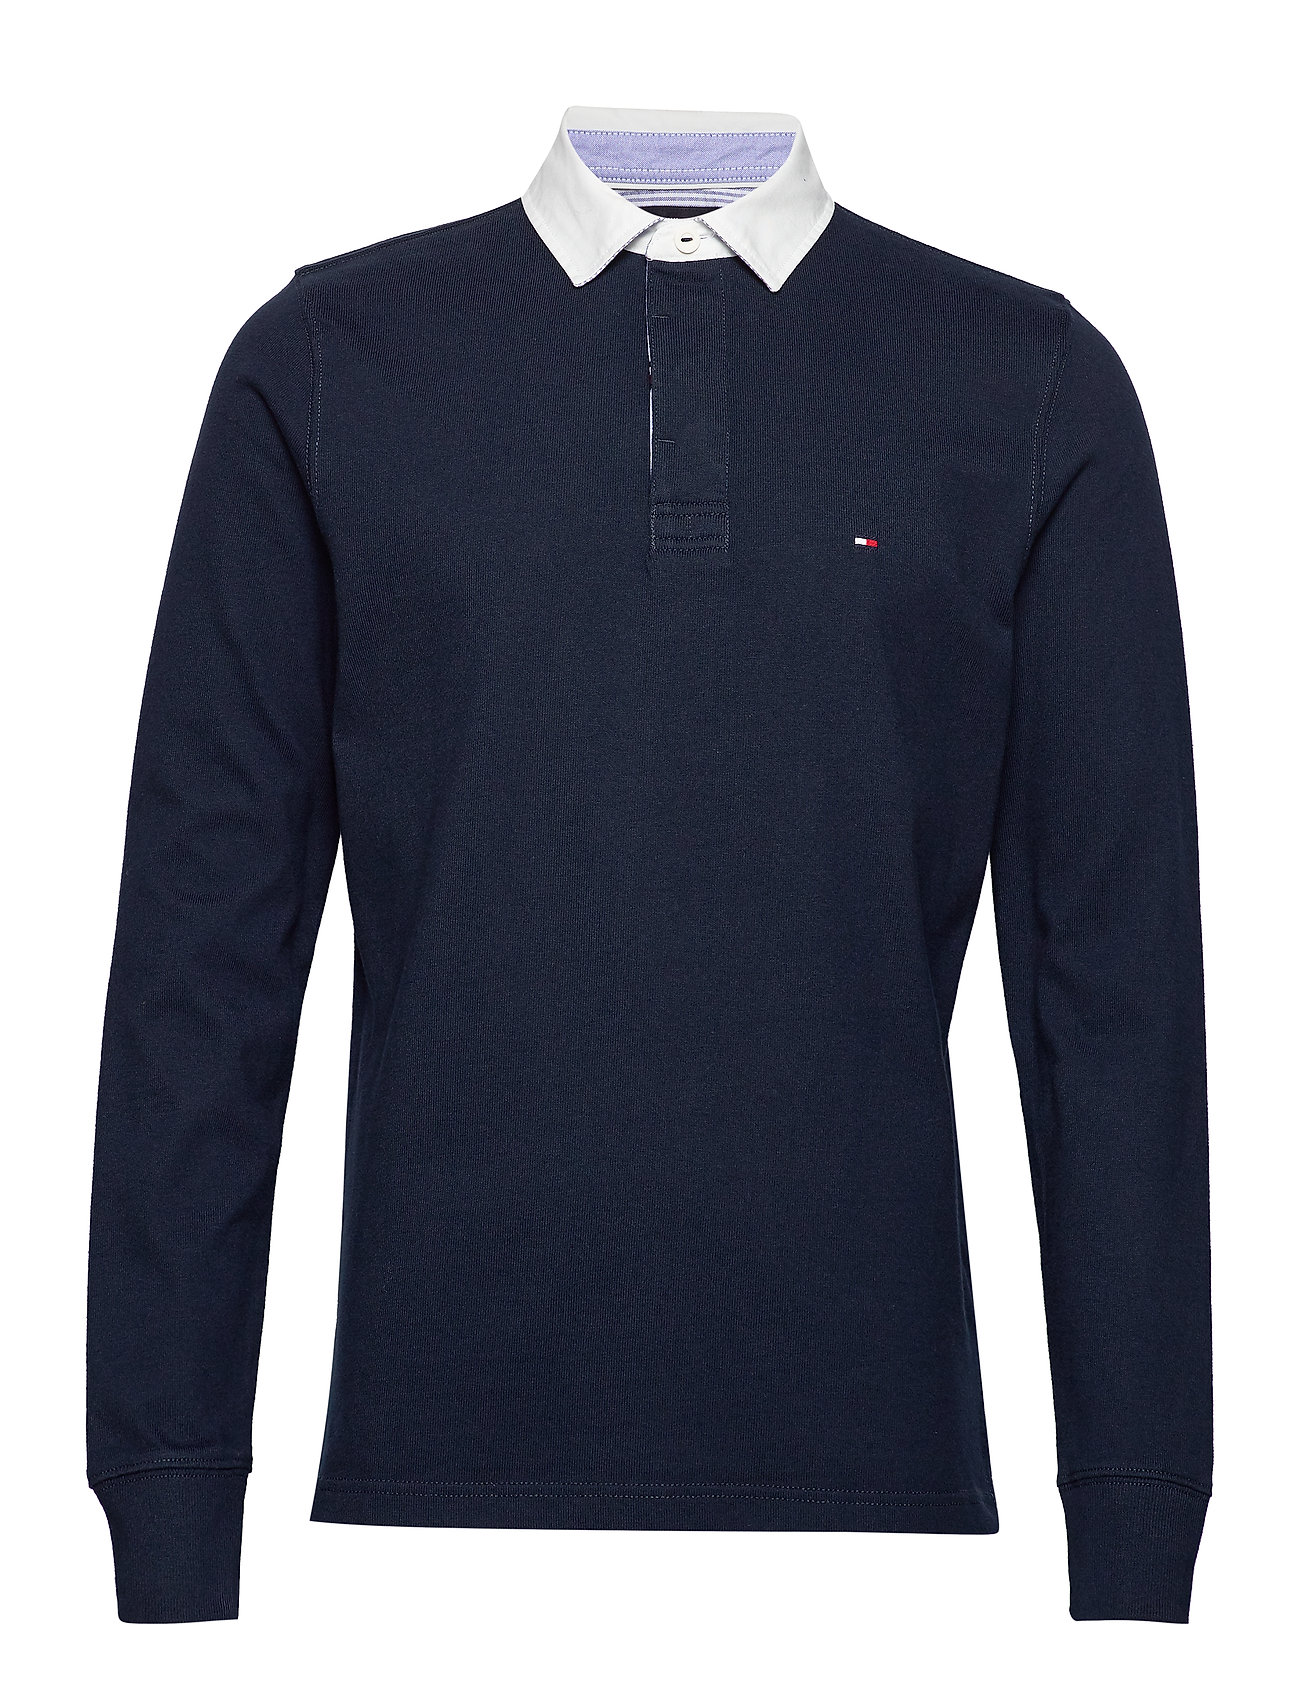 Tommy Hilfiger ICONIC RUGBY - SKY CAPTAIN